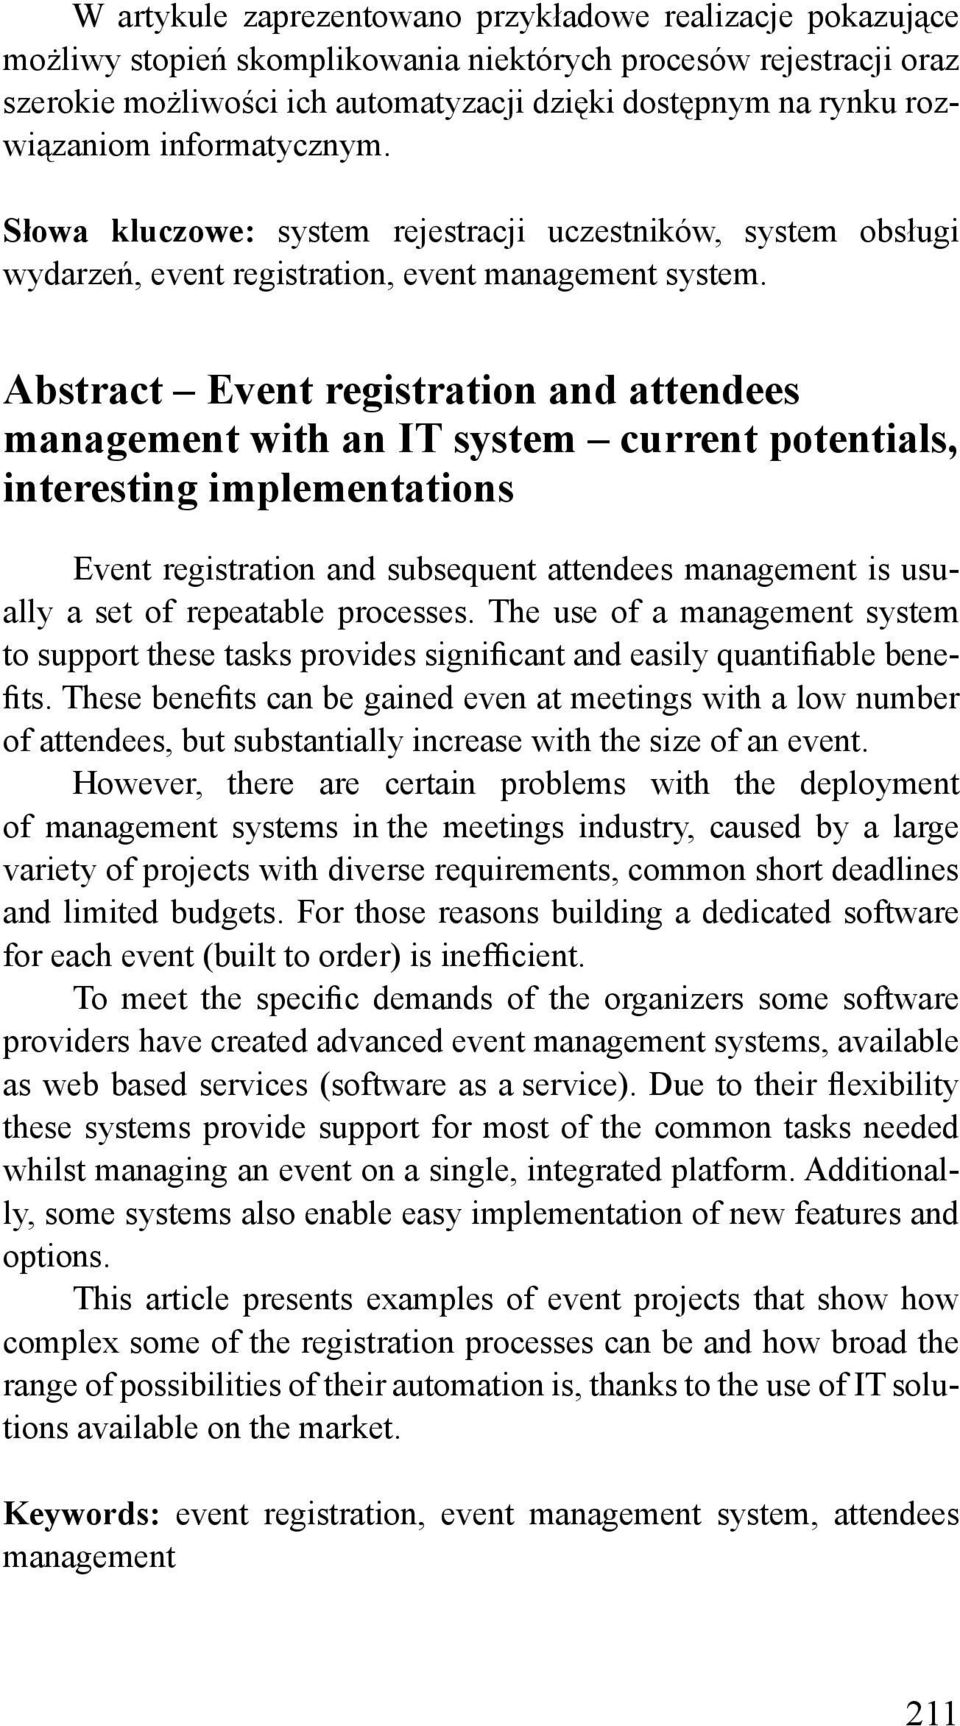 Abstract Event registration and attendees management with an IT system current potentials, interesting implementations Event registration and subsequent attendees management is usually a set of